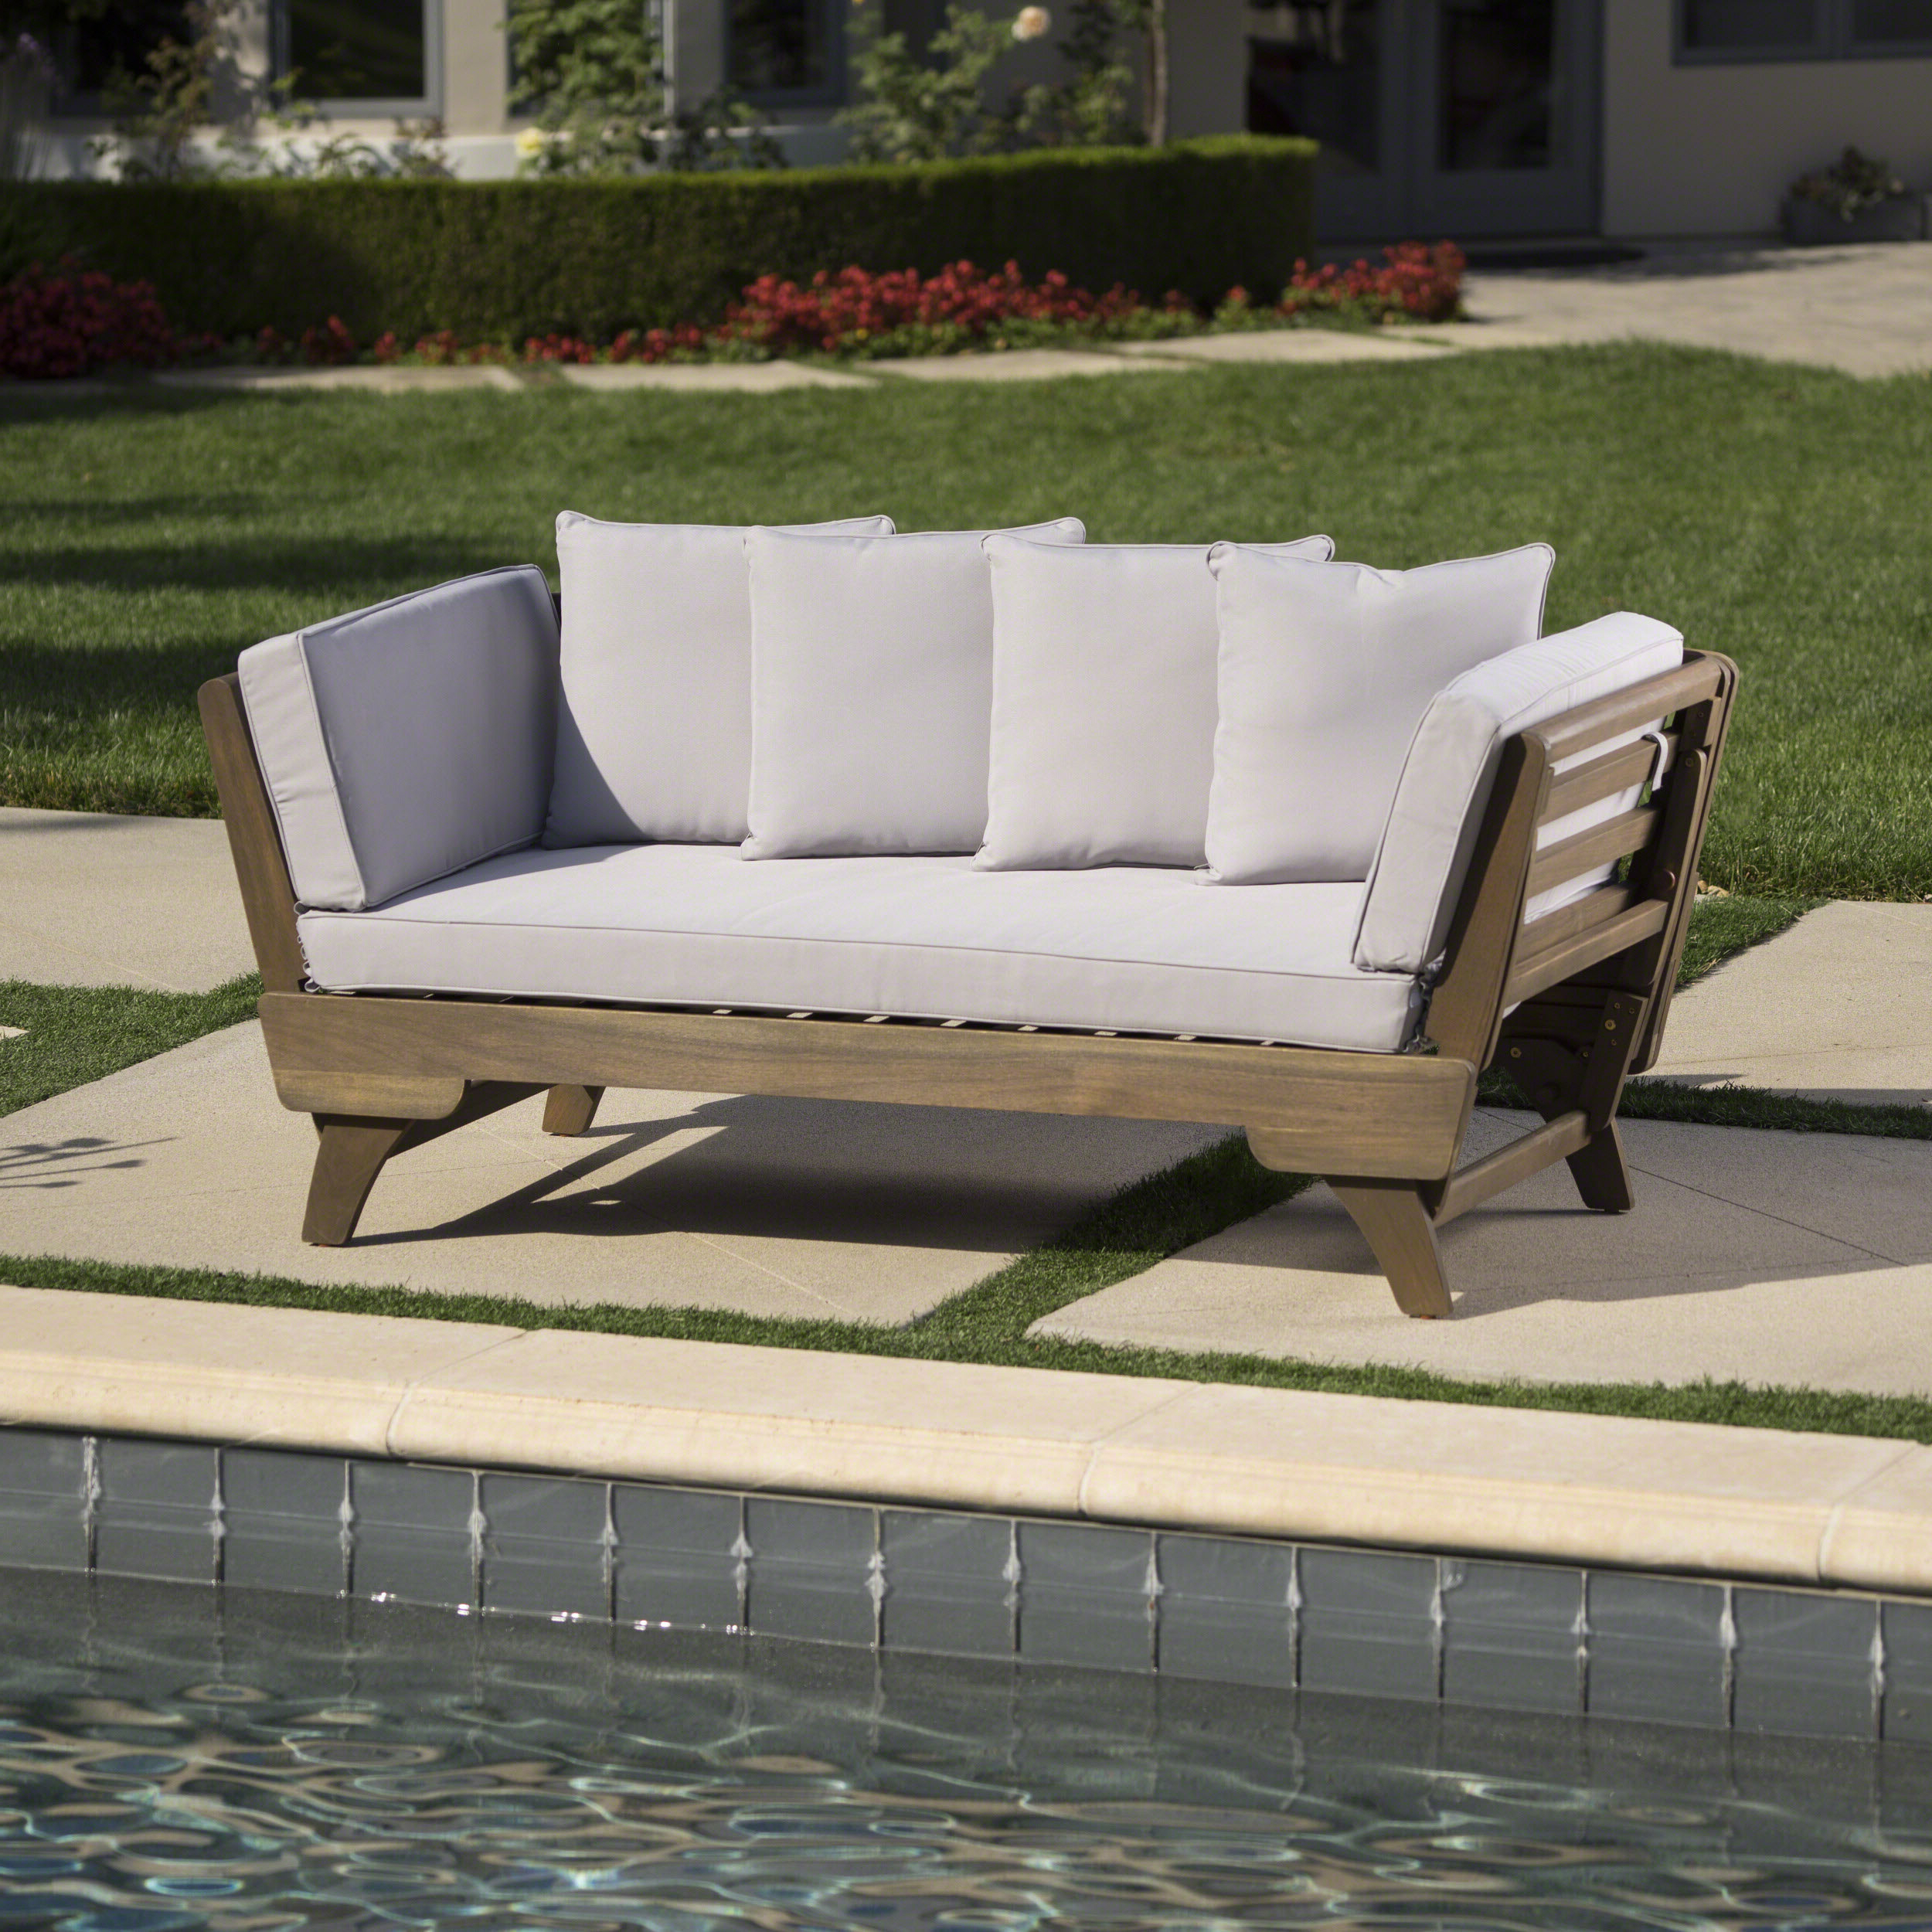 Best And Newest Dowling Patio Daybeds With Cushion Within Ellanti Patio Daybed With Cushions (View 5 of 25)